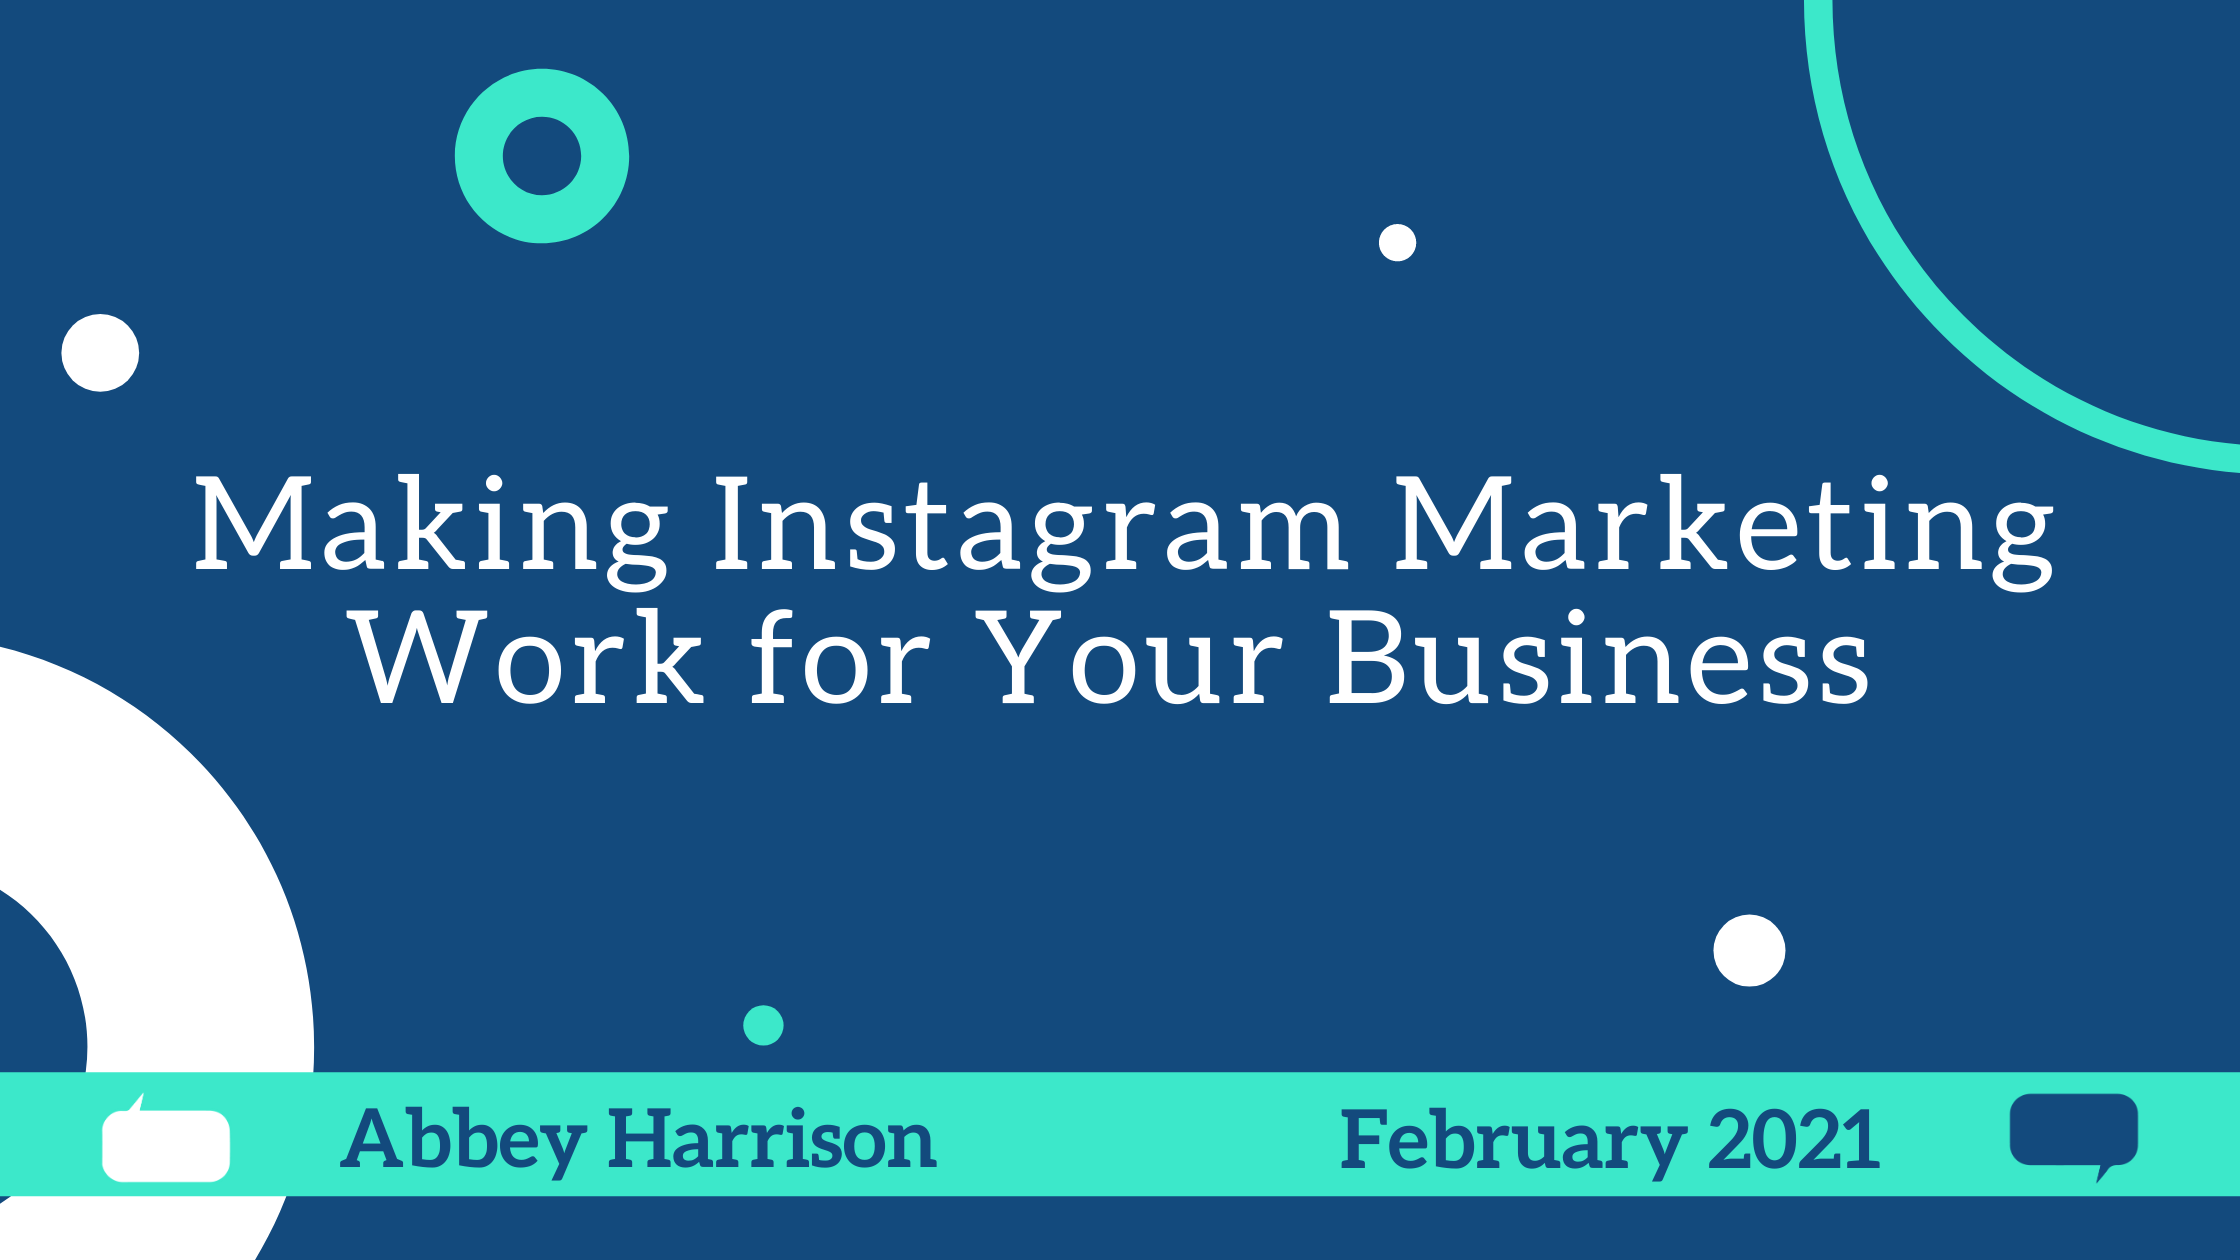 Making Instagram Marketing Work for Your Business